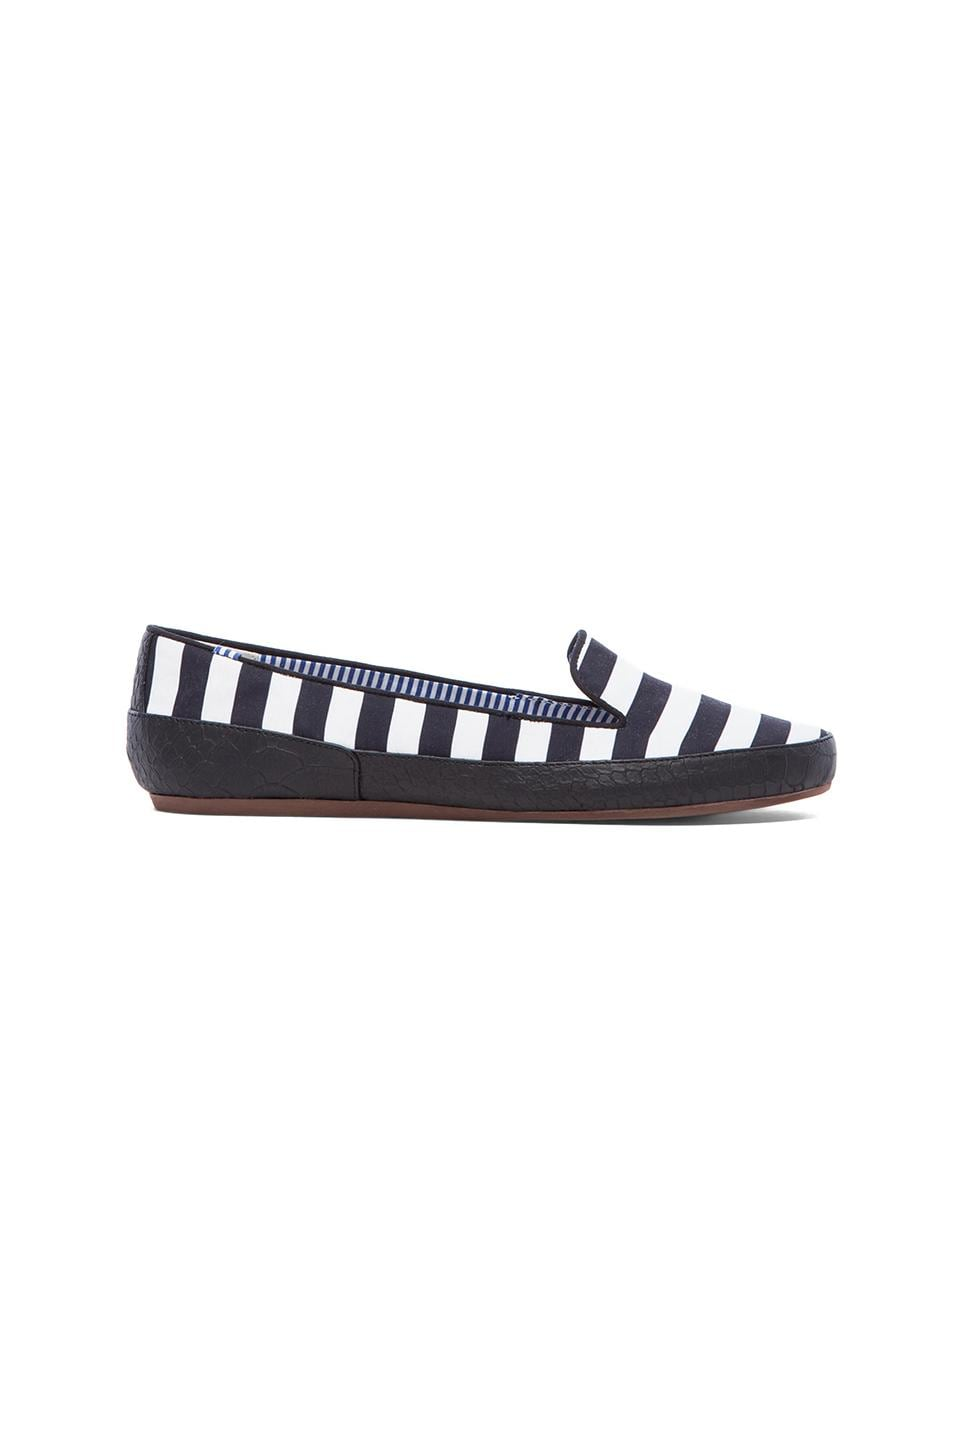 Charles Philip Shanghai Gaby Loafer in Black & White